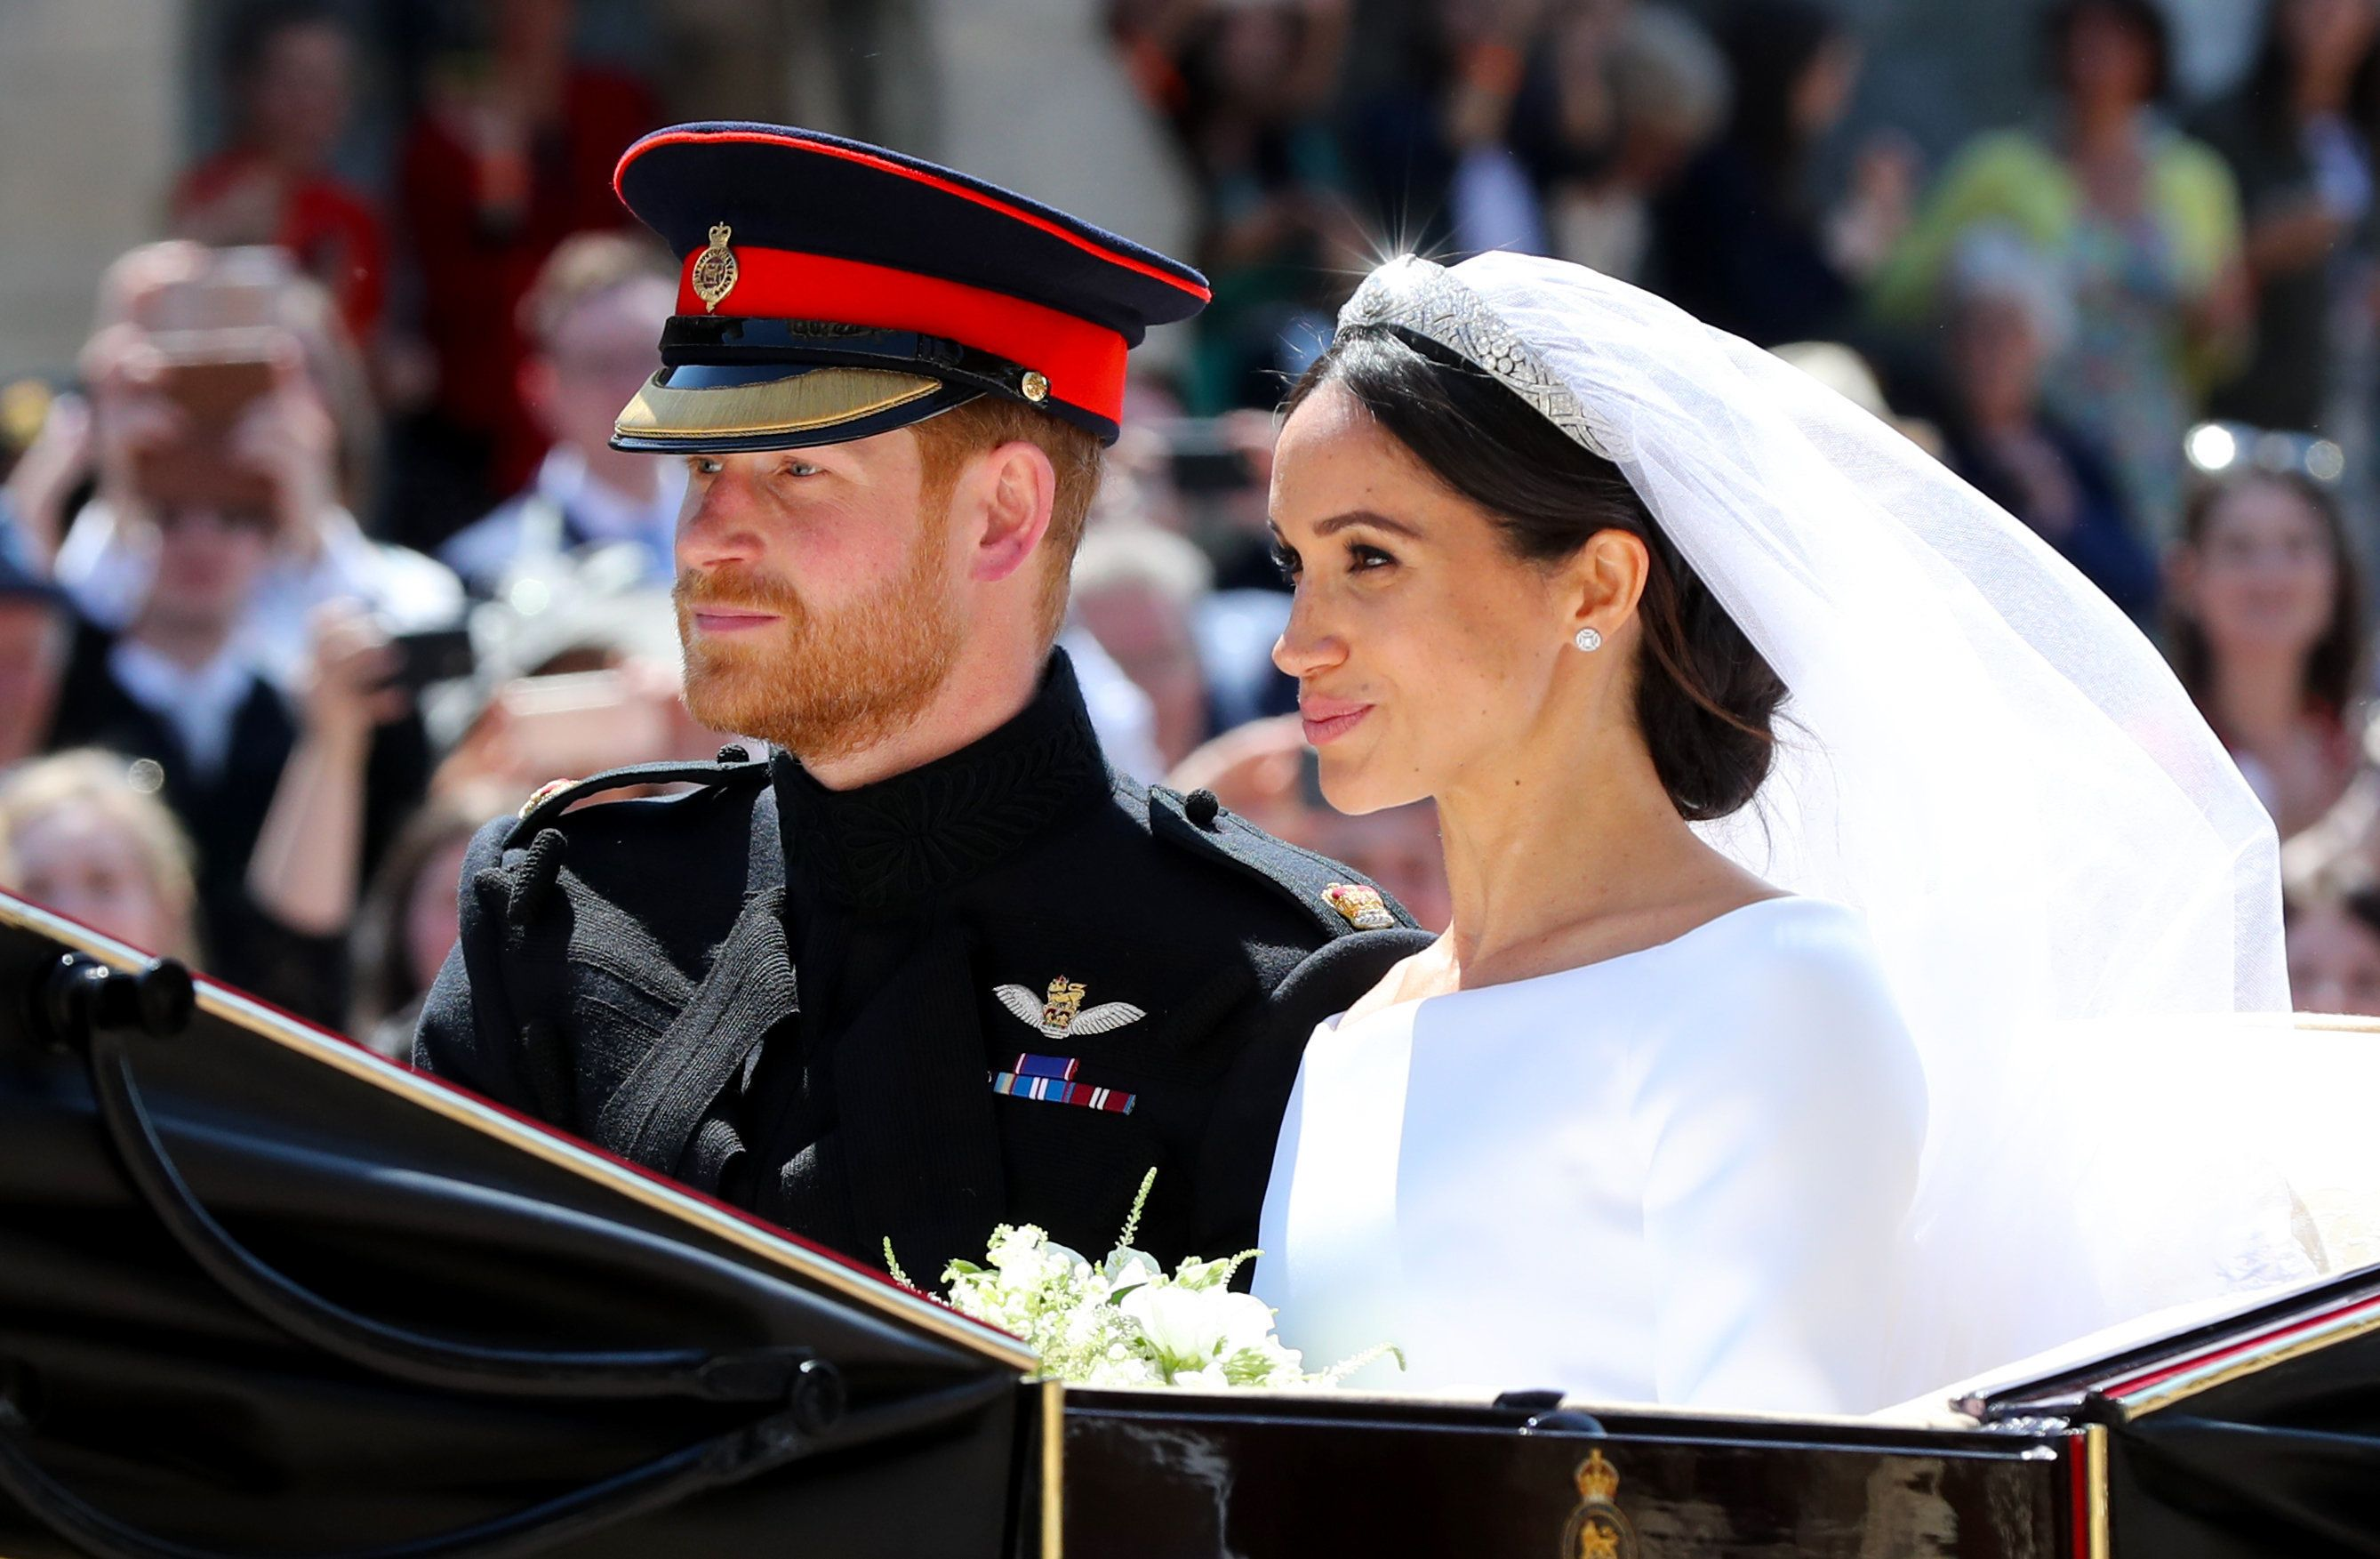 All The Surprising Modern Touches At Prince Harry And Meghan Markle's